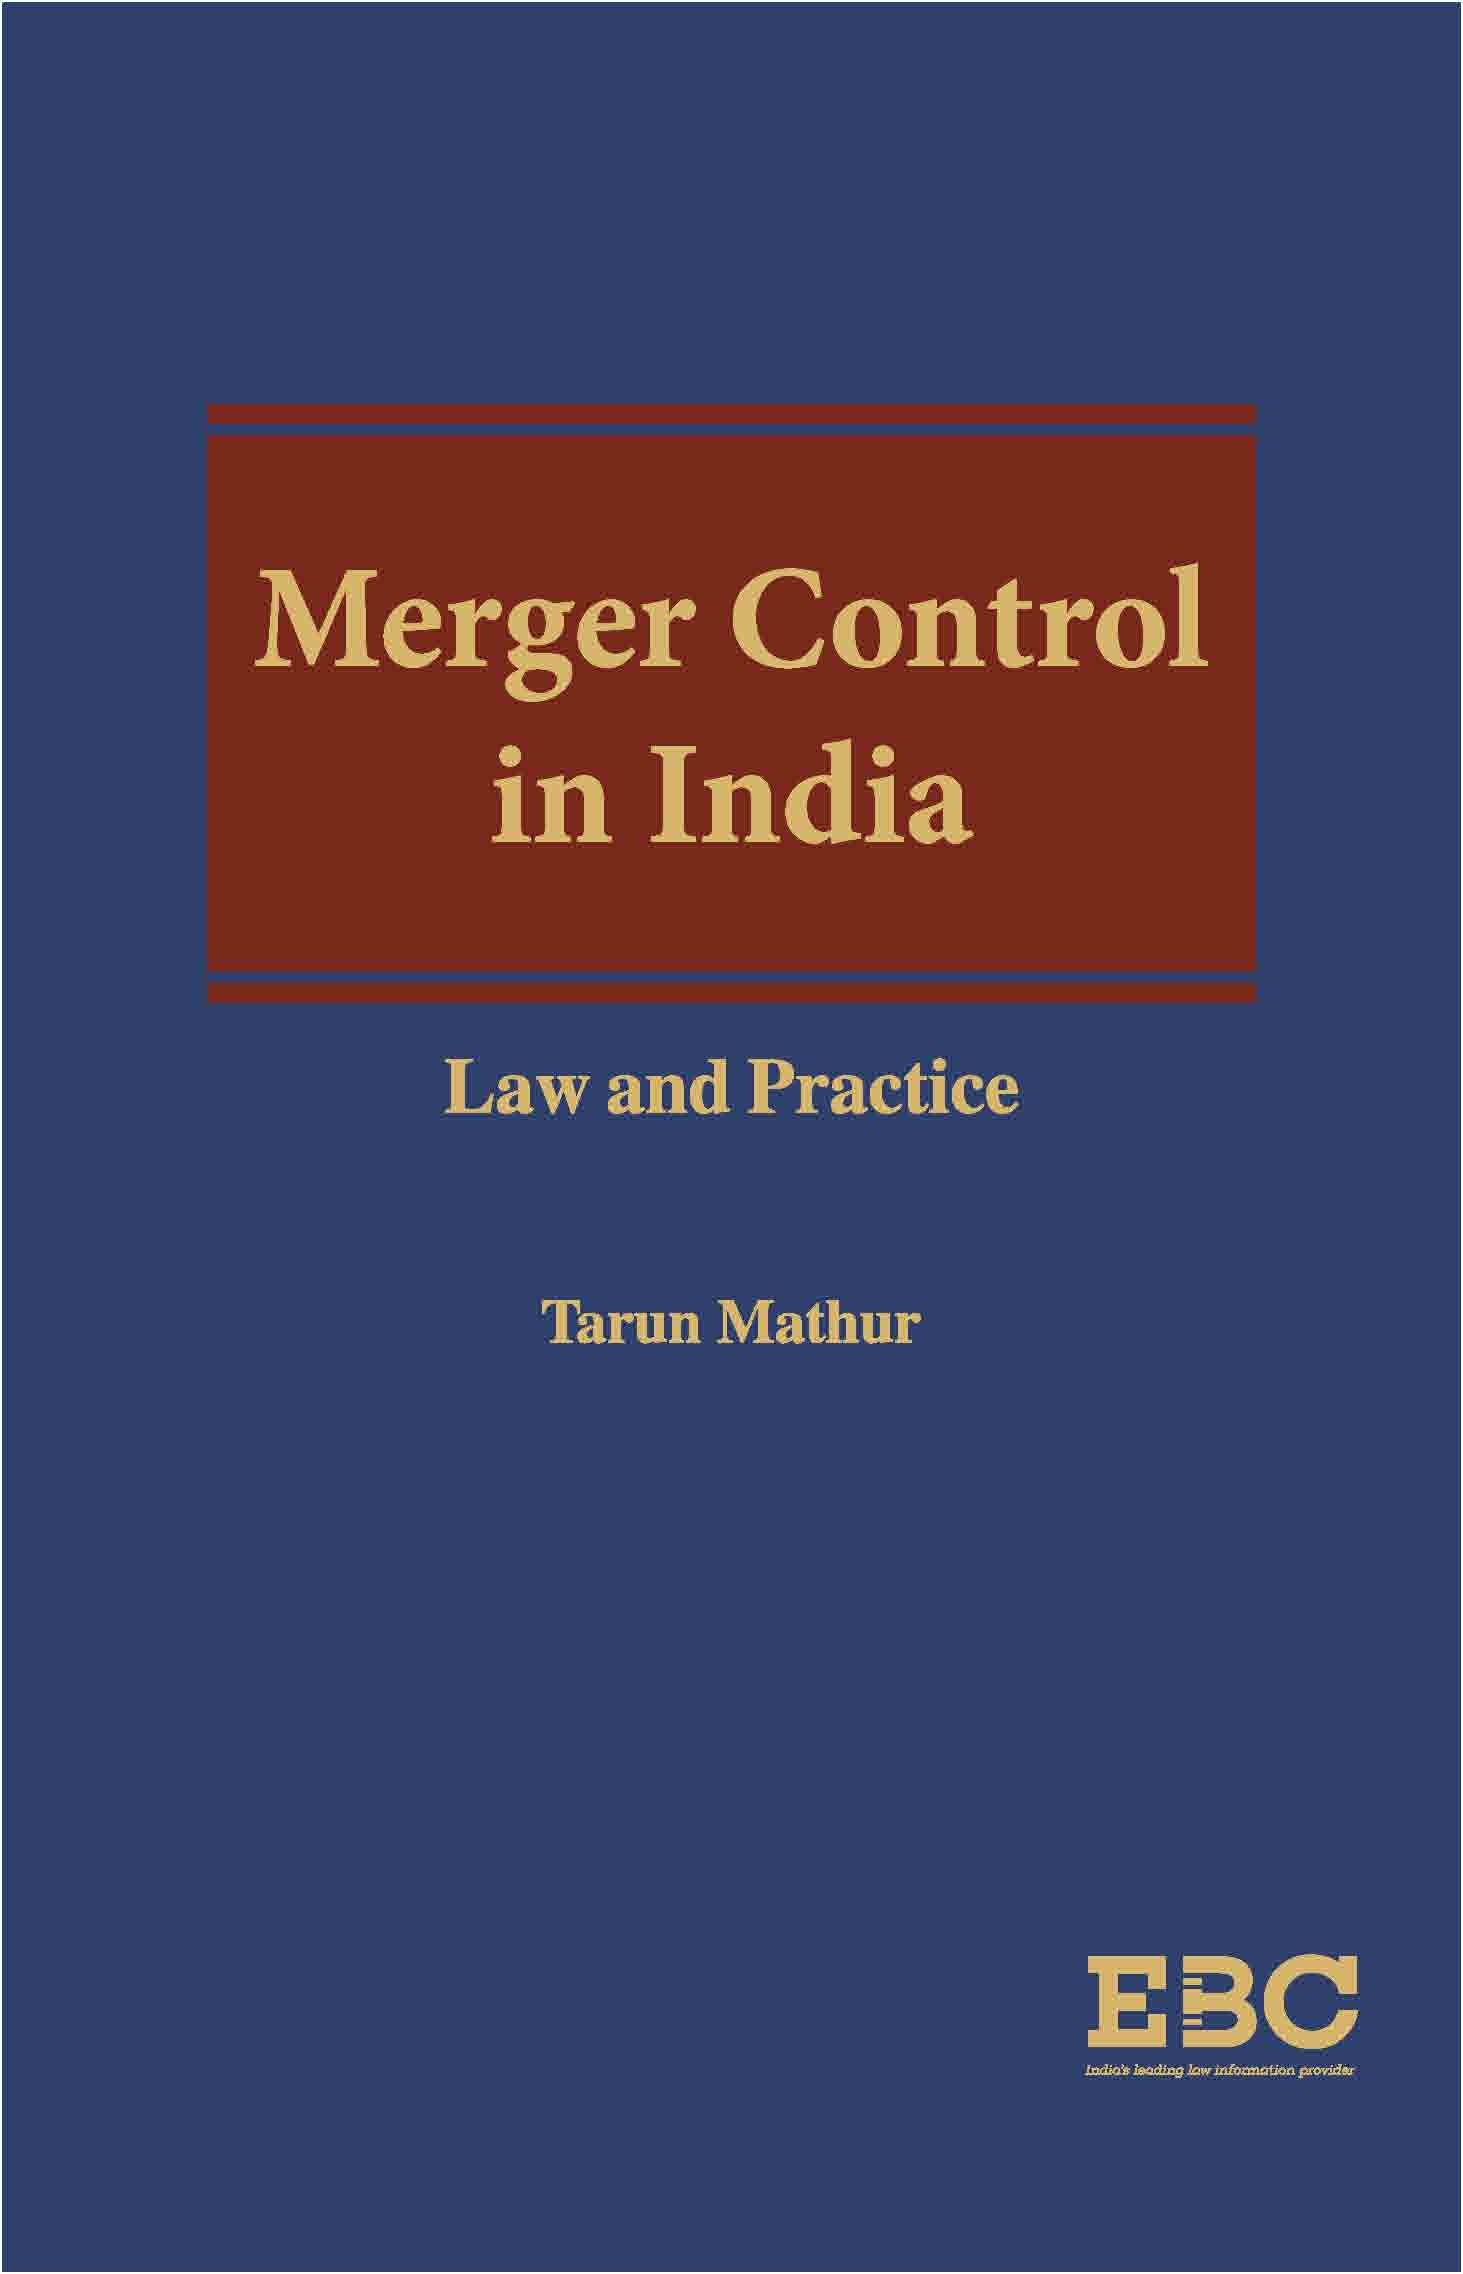 Merger Control In India: Law And Practice by Tarun Mathur